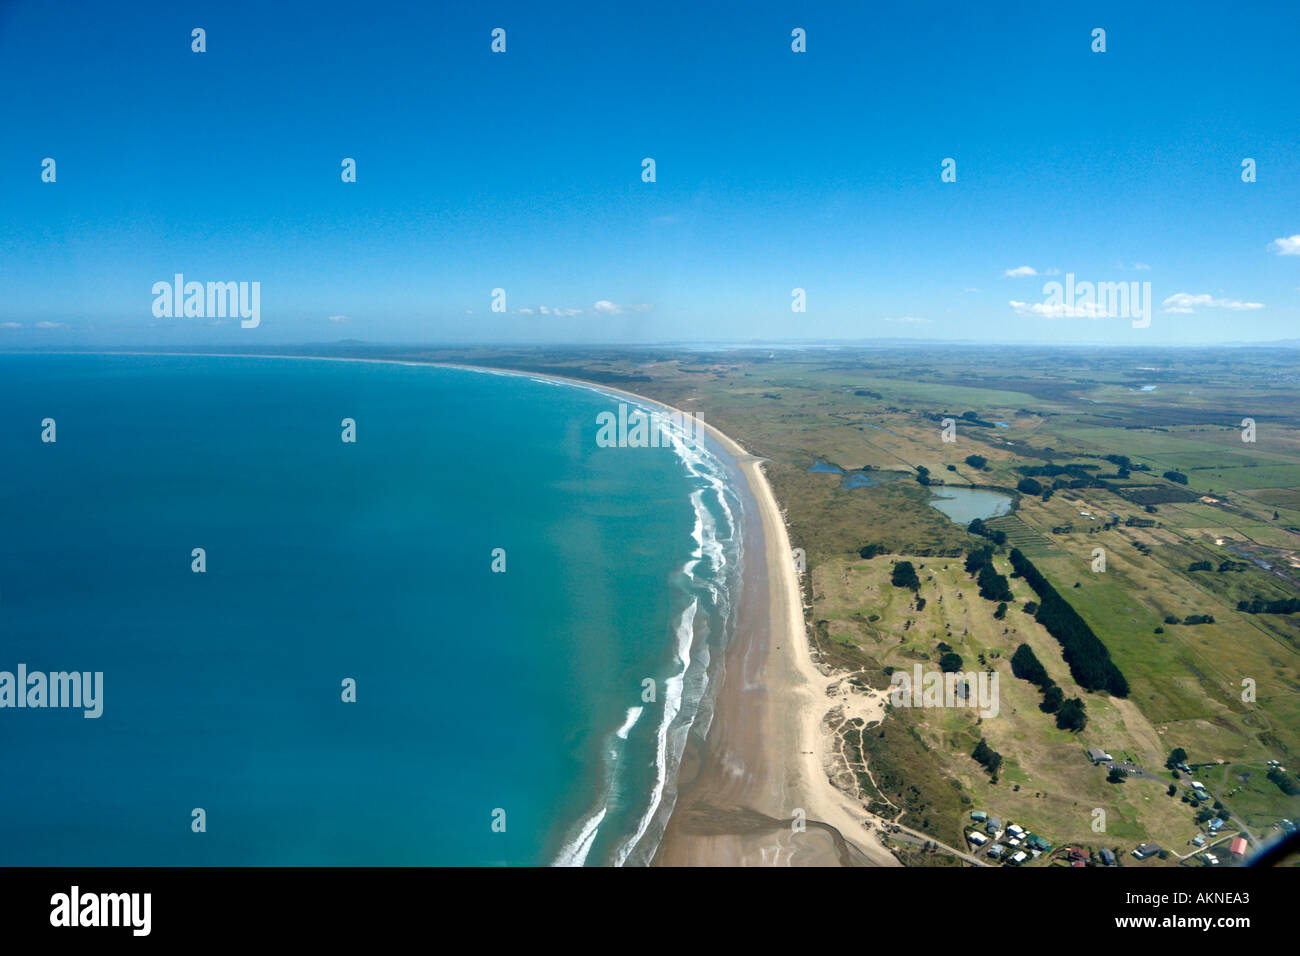 Aerial view of  Ahipara Beach from a small plane, part of Ninety Mile Beach,  Northland, North Island, New Zealand - Stock Image